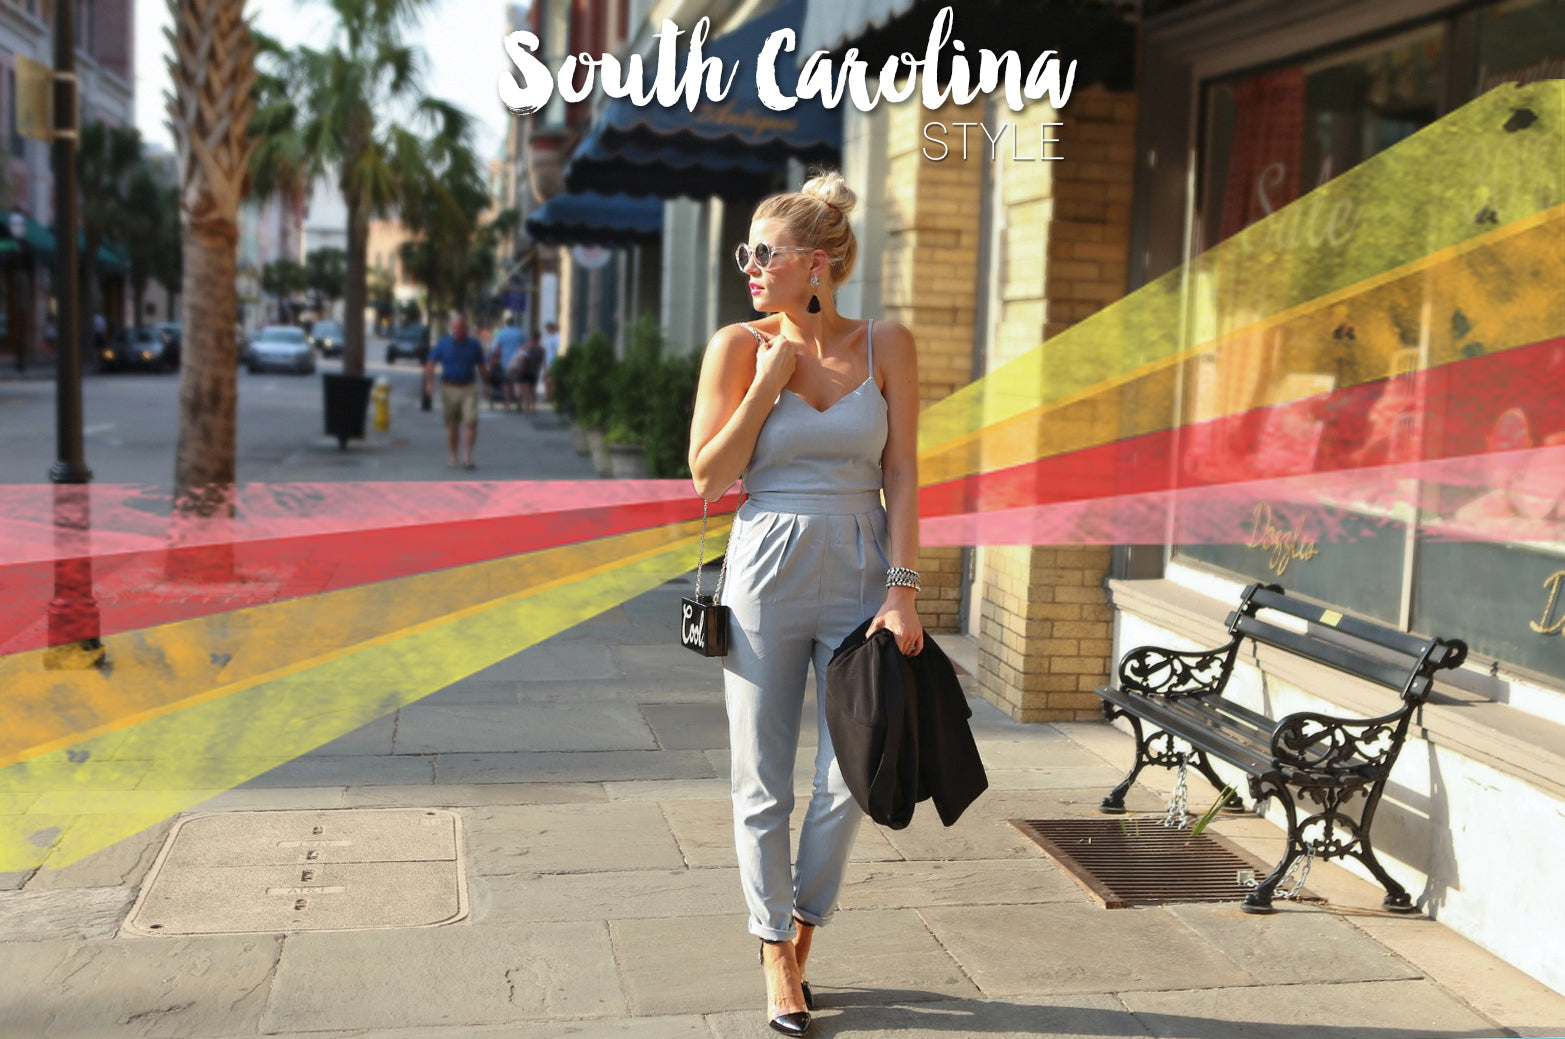 South Carolina Style from The Shopping Bag's Styles to Take You Miles Collection